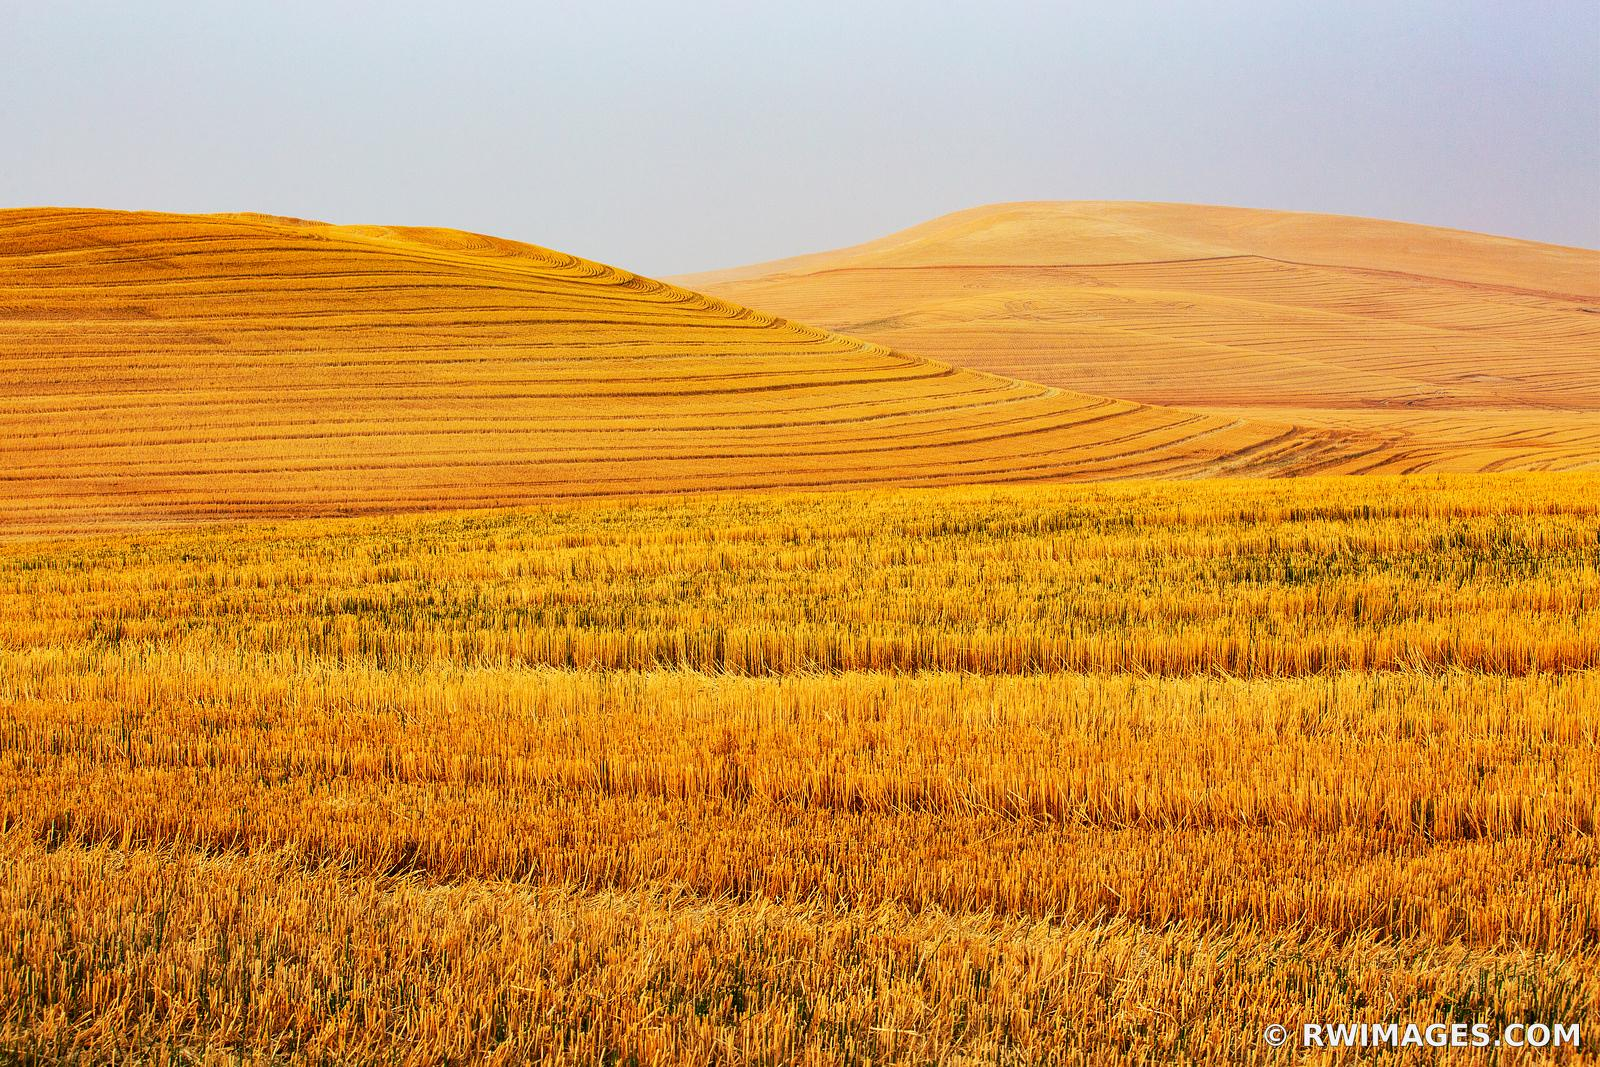 WHEAT FIELD AFTER SUMMER HARVEST PALOUSE REGION EASTERN WASHINGTON STATE LANDSCAPE